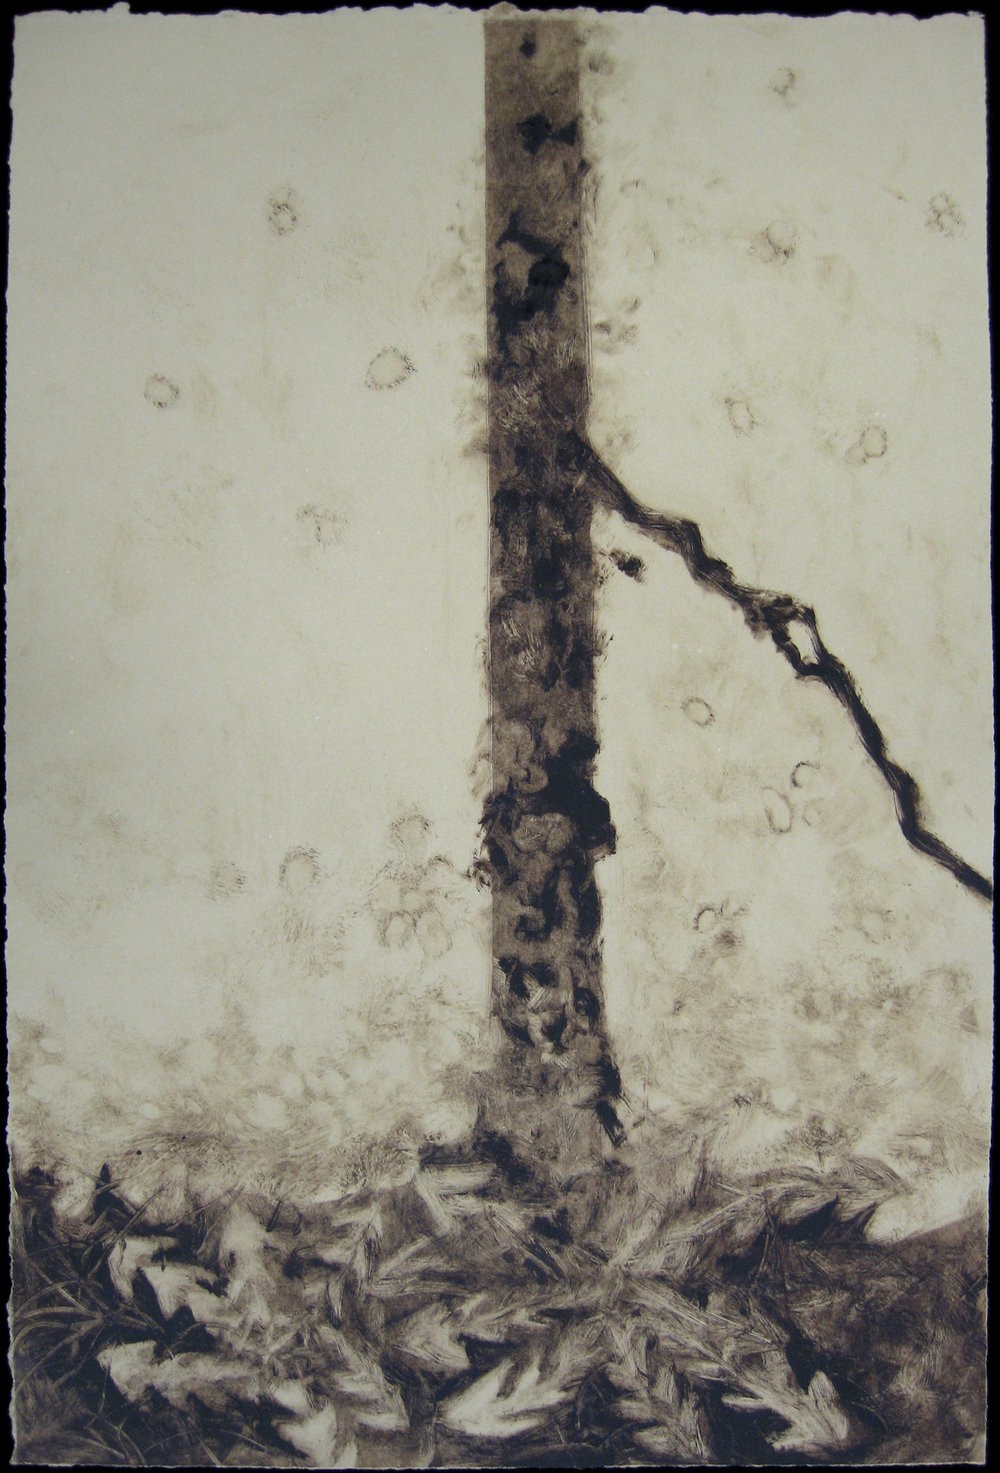 sidewalk-cracks-tan-3-by-emily-hoisington-2009_5346178063_o.jpg